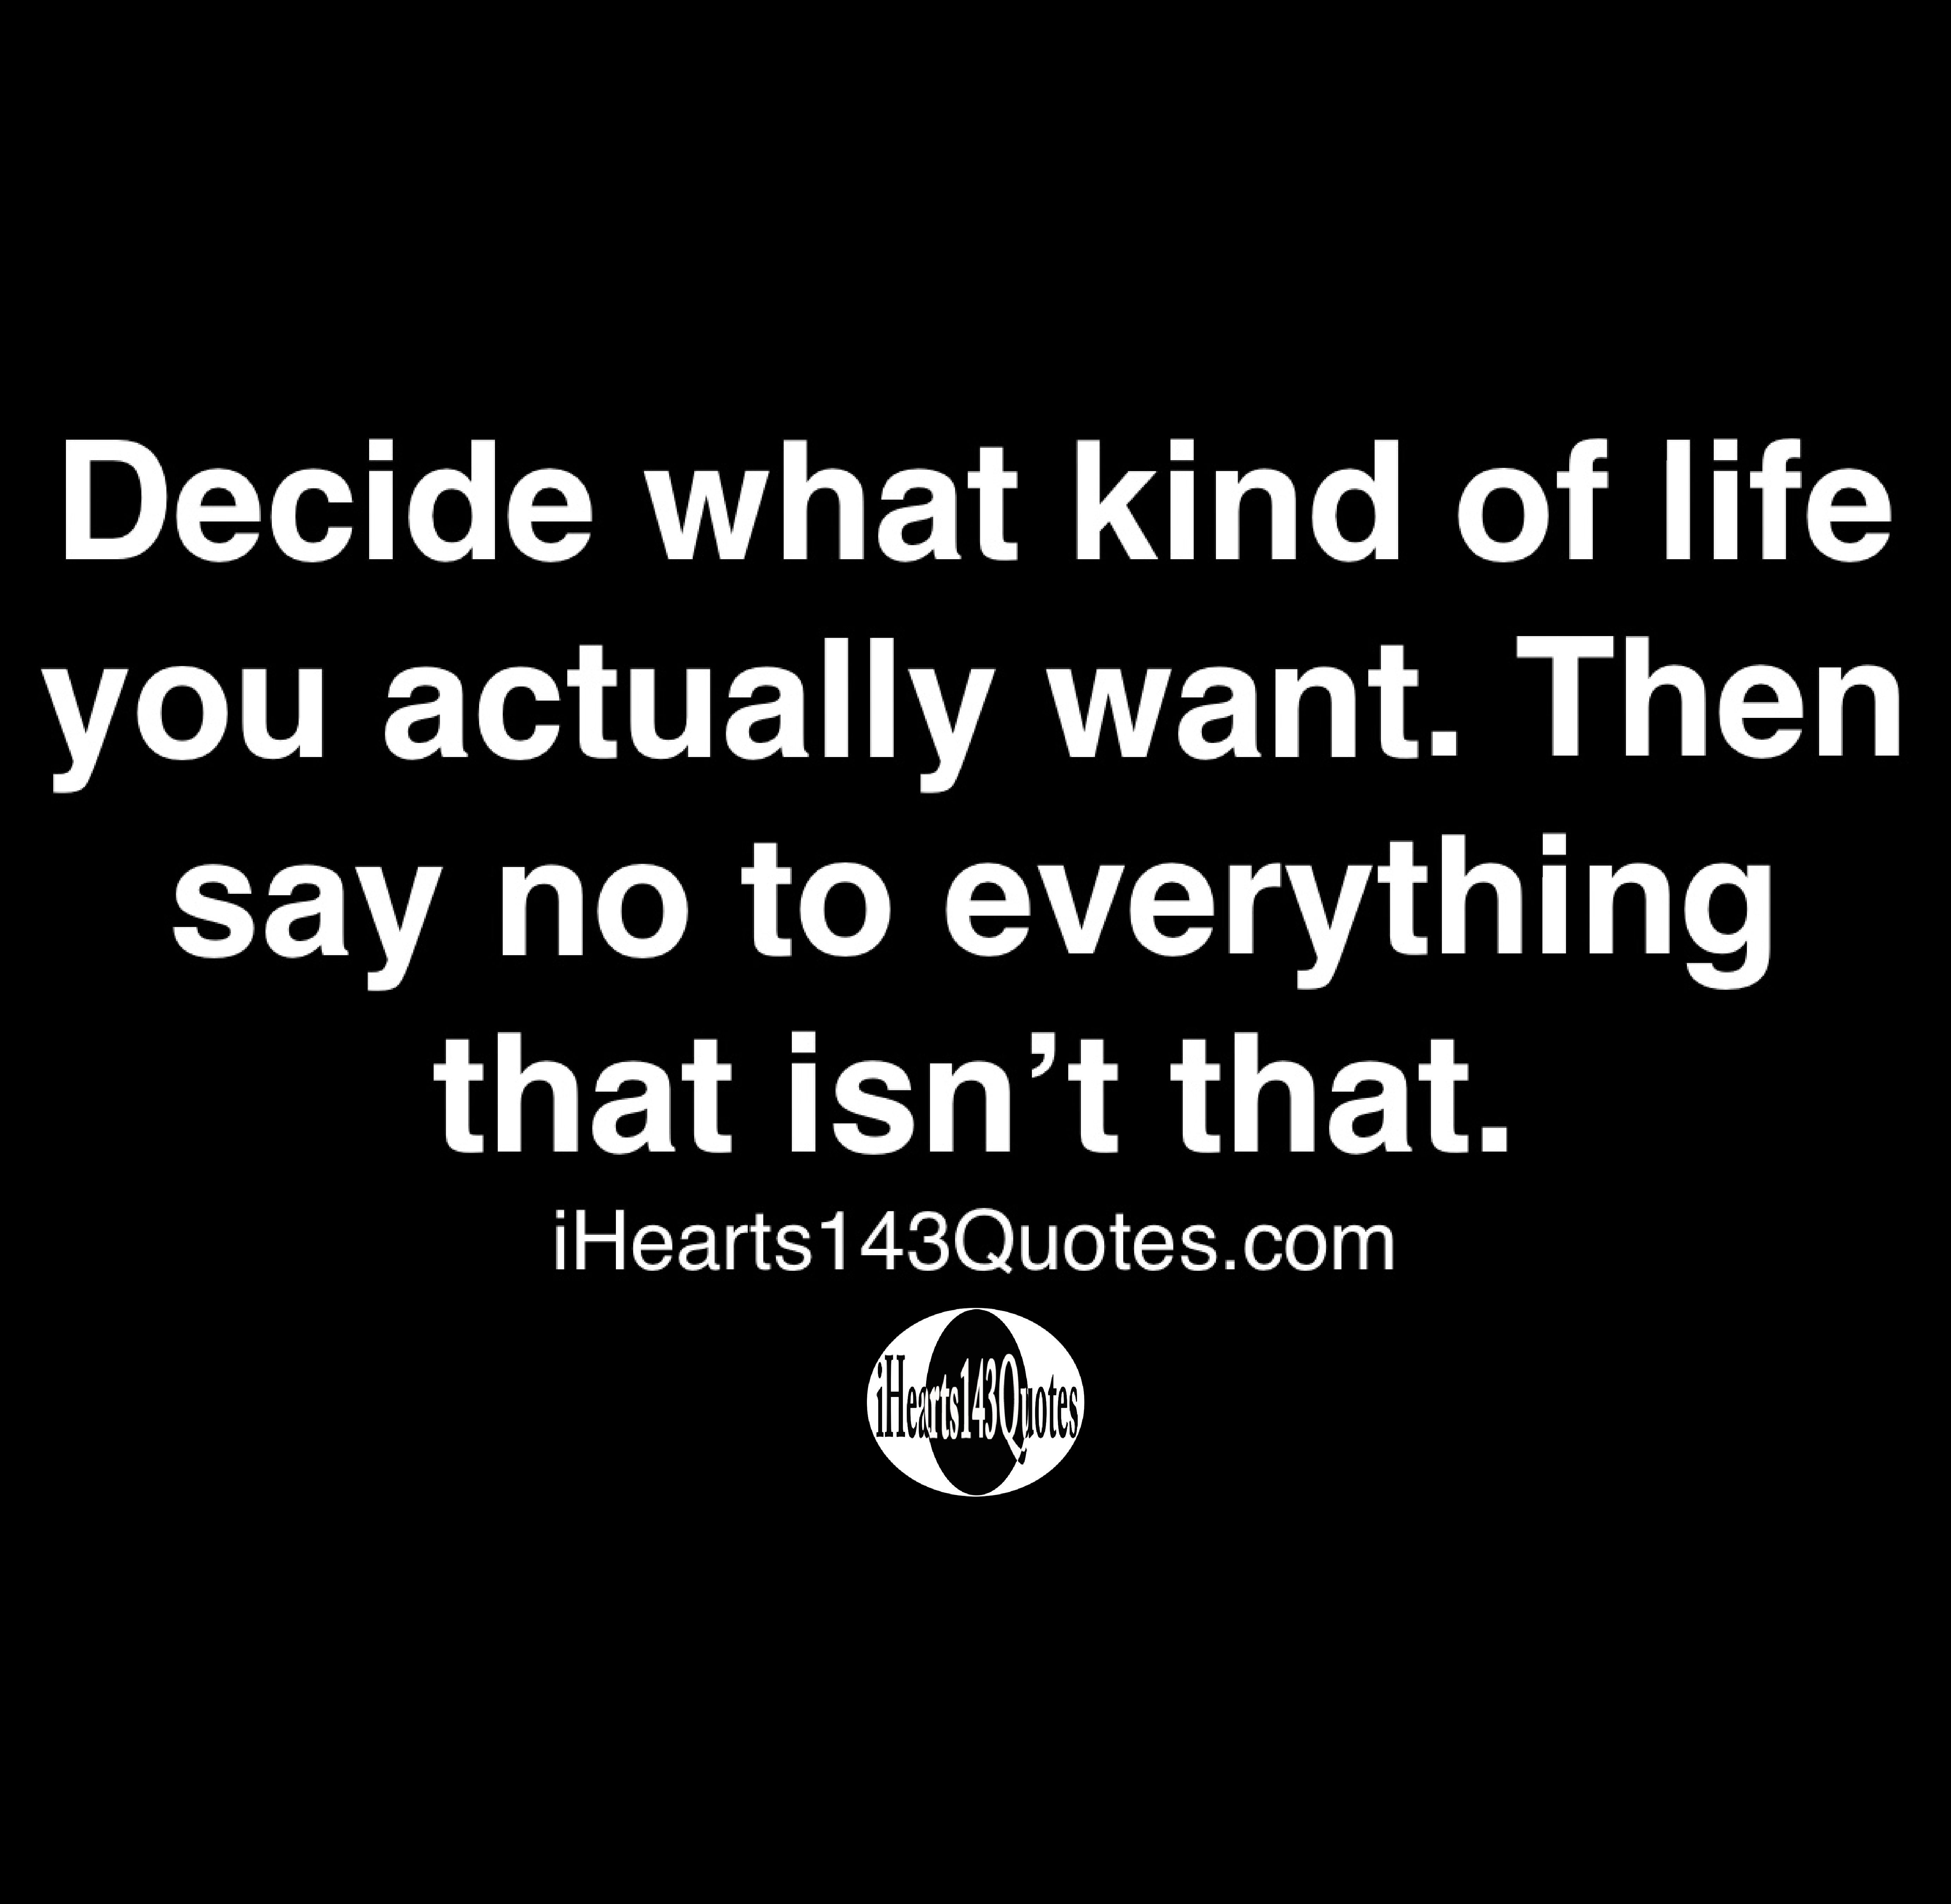 Decide what kind of life you actually want. Then say no to everything that isn't that - Quotes